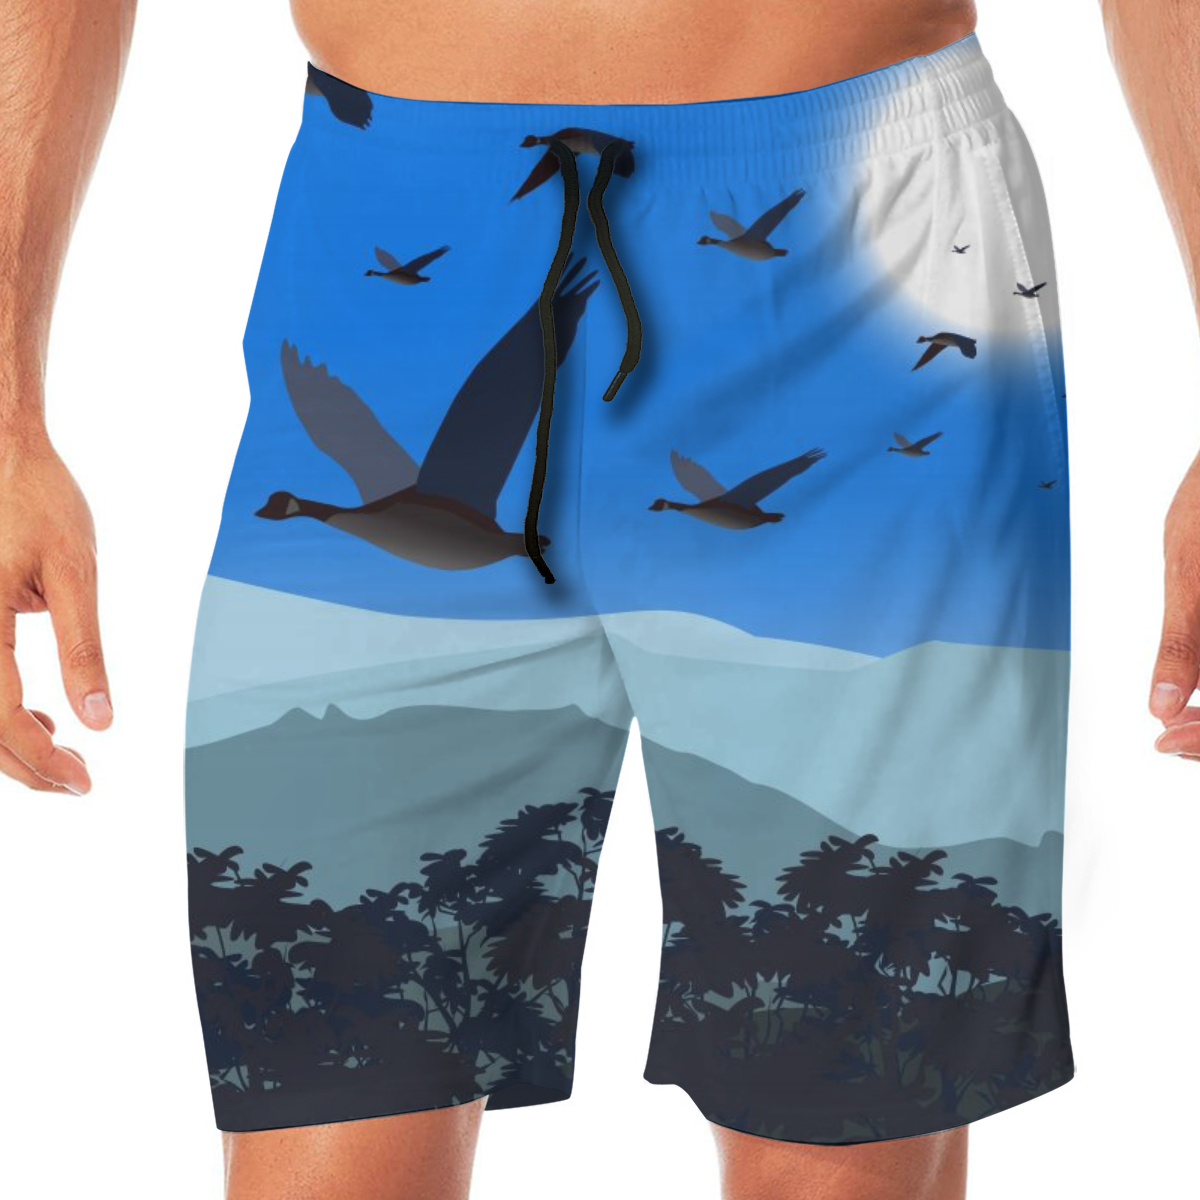 Summer Geese Flying Low Over Treetop On Cold Daynight Men Novelty Gay Funny Lounge Pants Beachwear